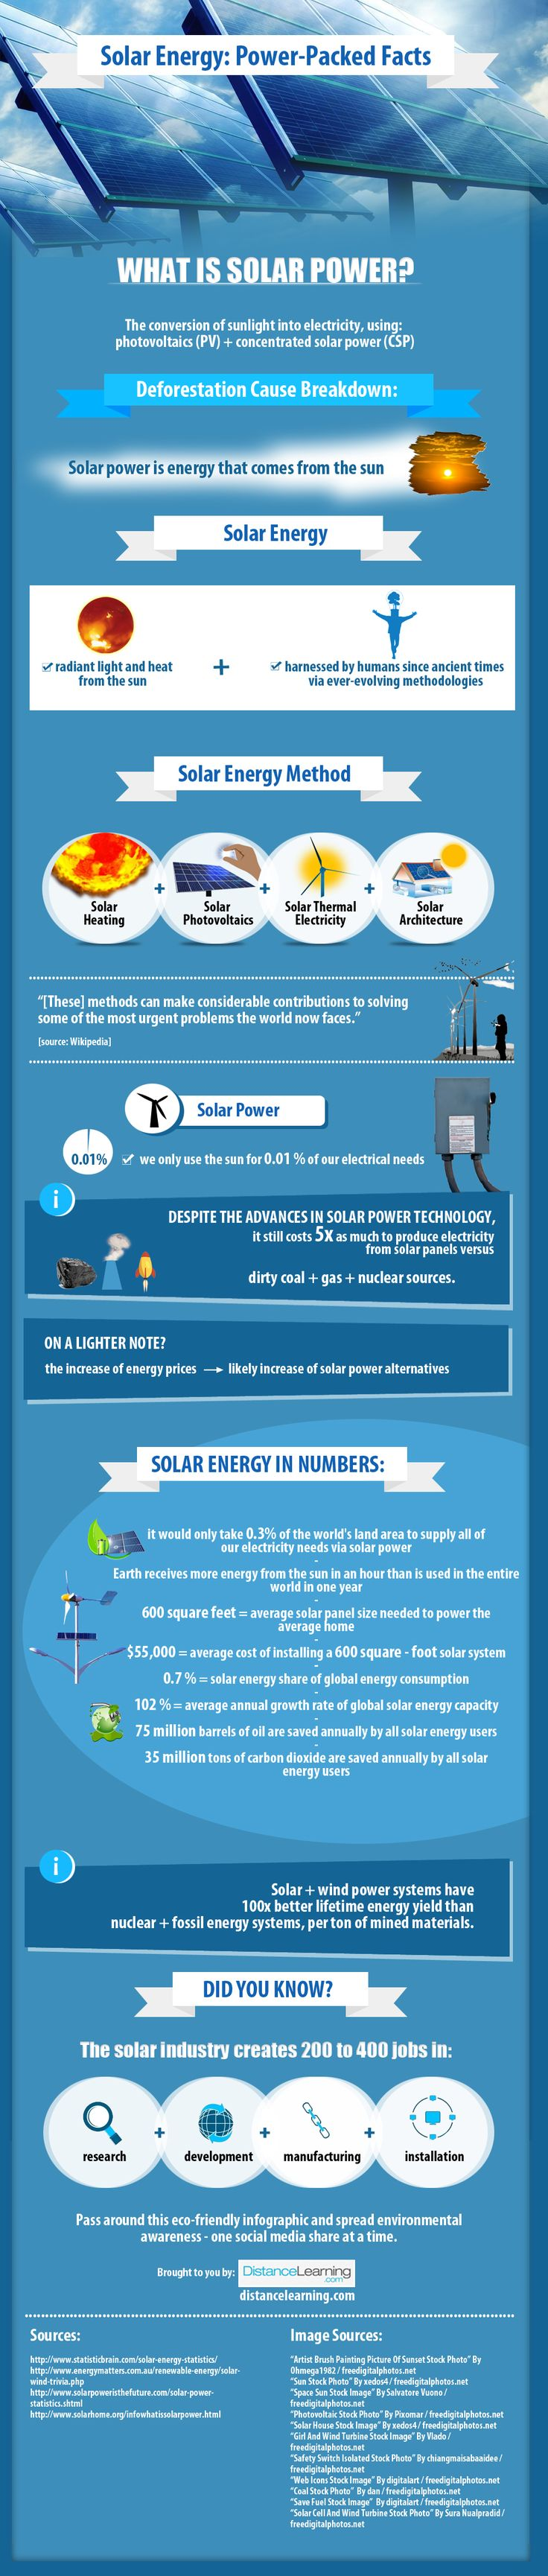 375 best images about renewable energy on pinterest for Energy conservation facts